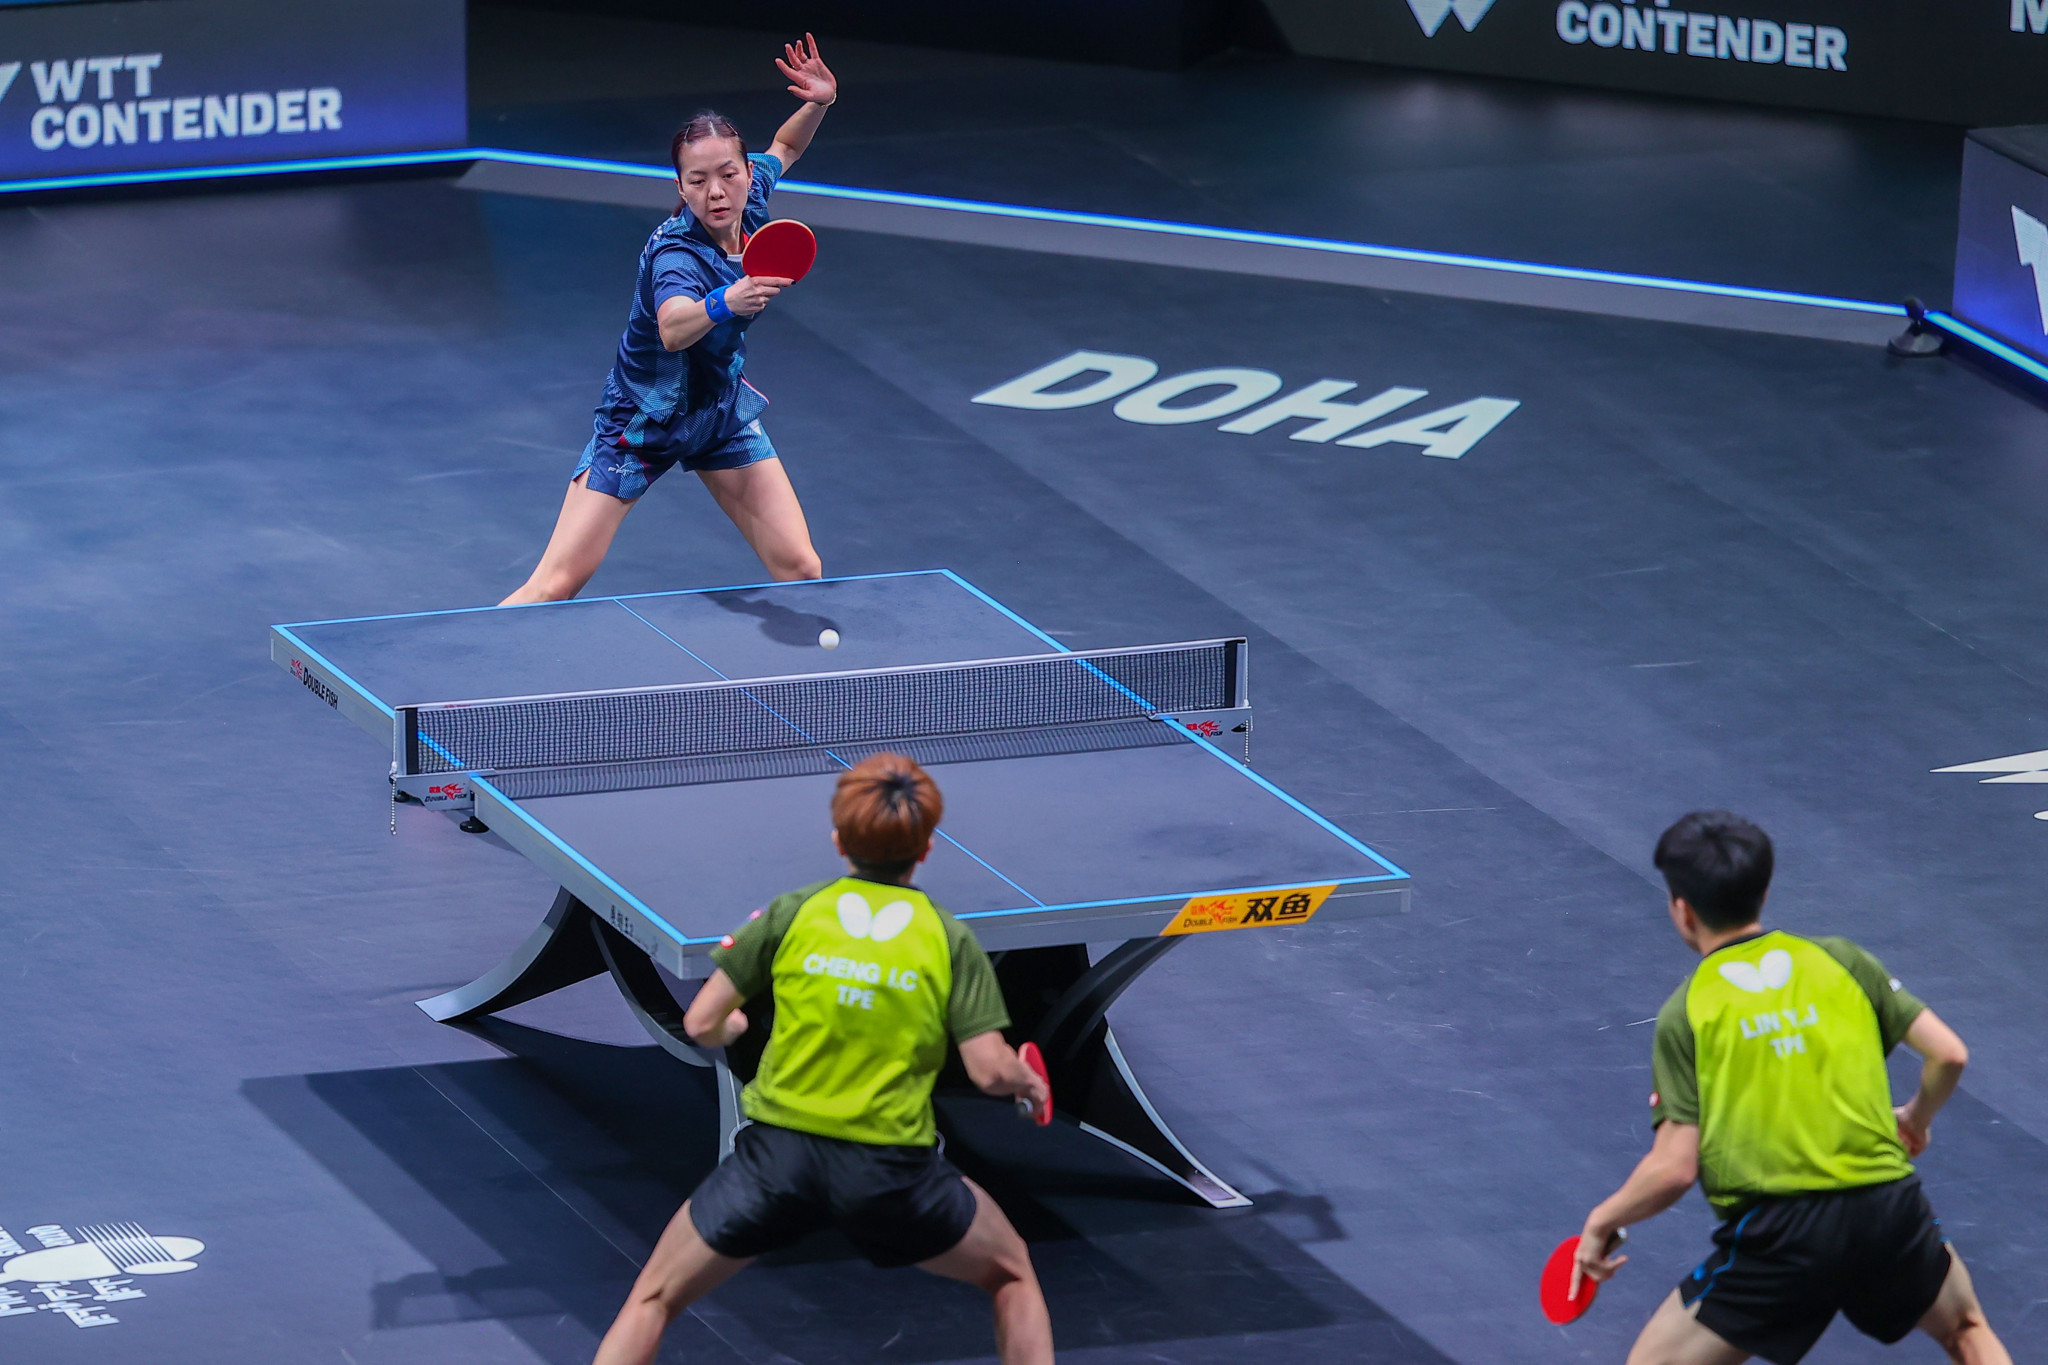 Yuan Jia Nan, in blue, is set to represent France at Tokyo 2020 after winning her semi-final at the ITTF European Olympic singles qualification tournament ©Getty Images